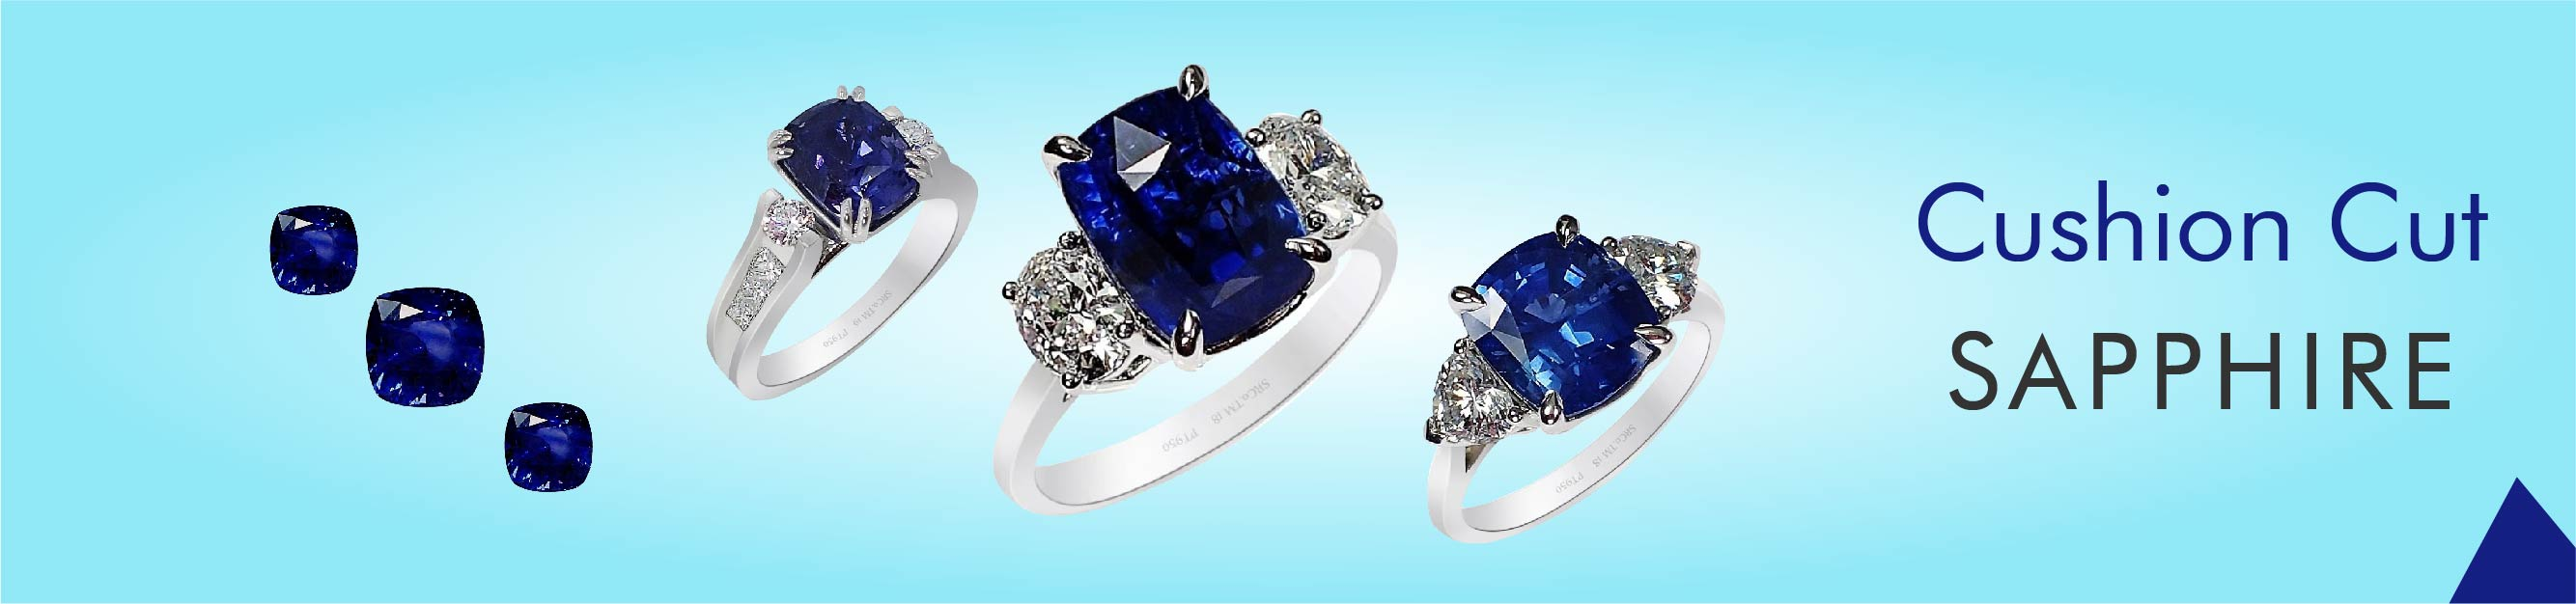 Cushion Cut Sapphires